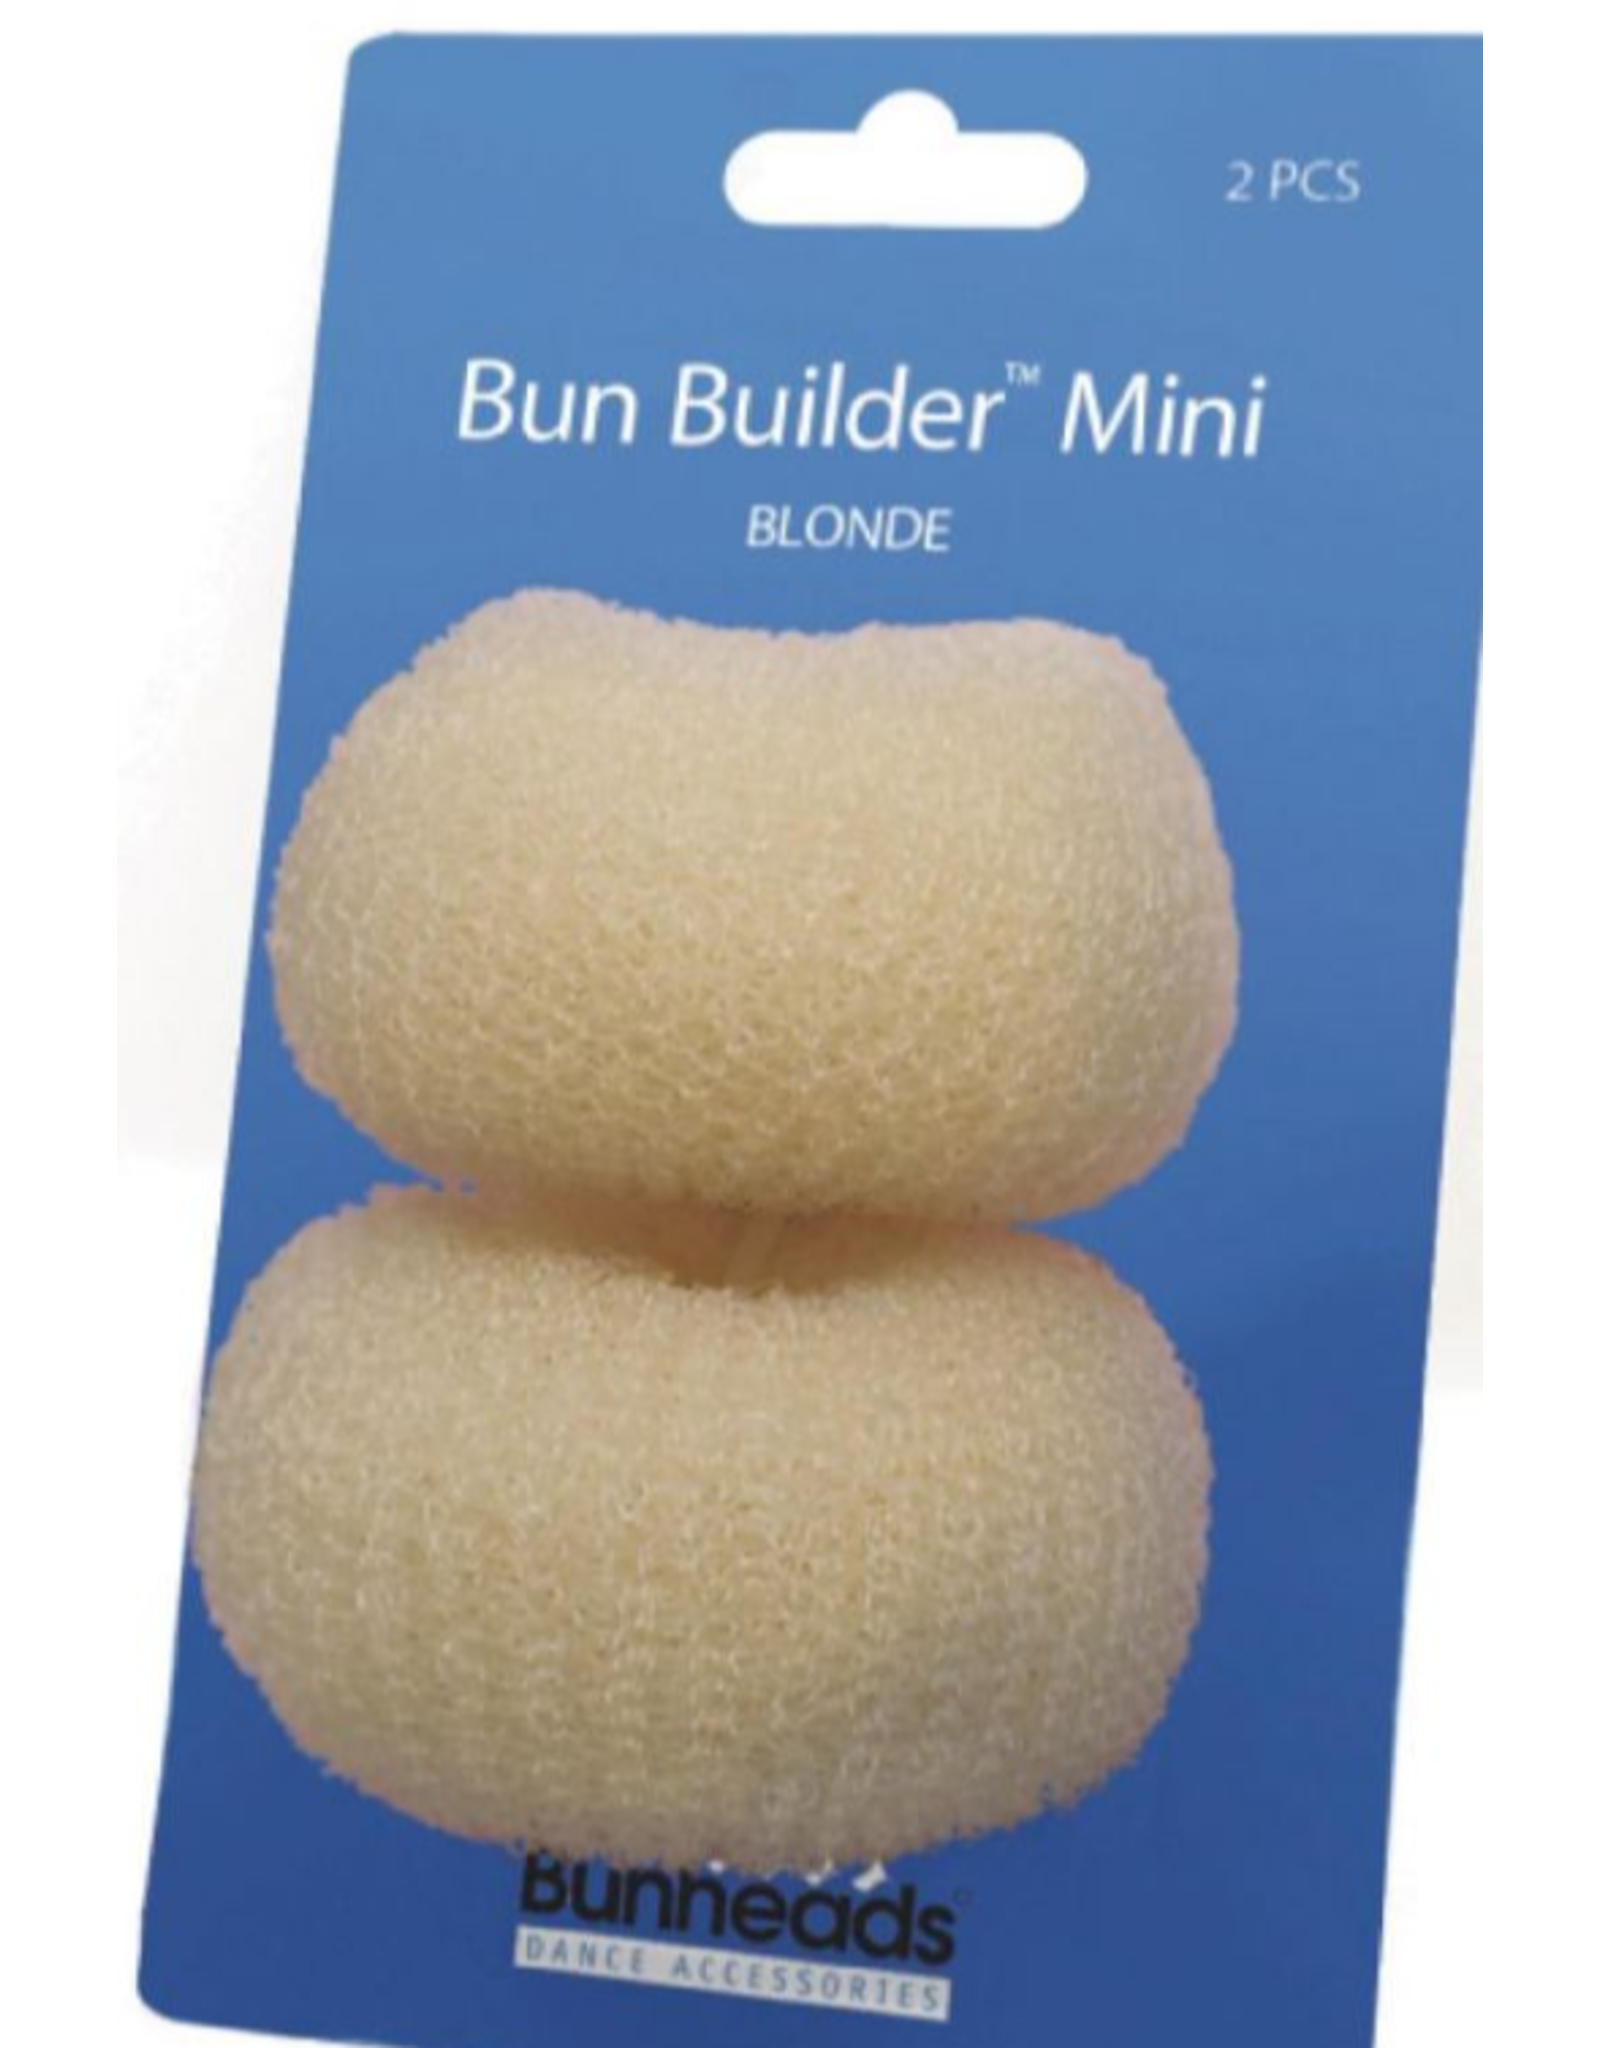 Capezio 2 Piece Bun Builder Mini